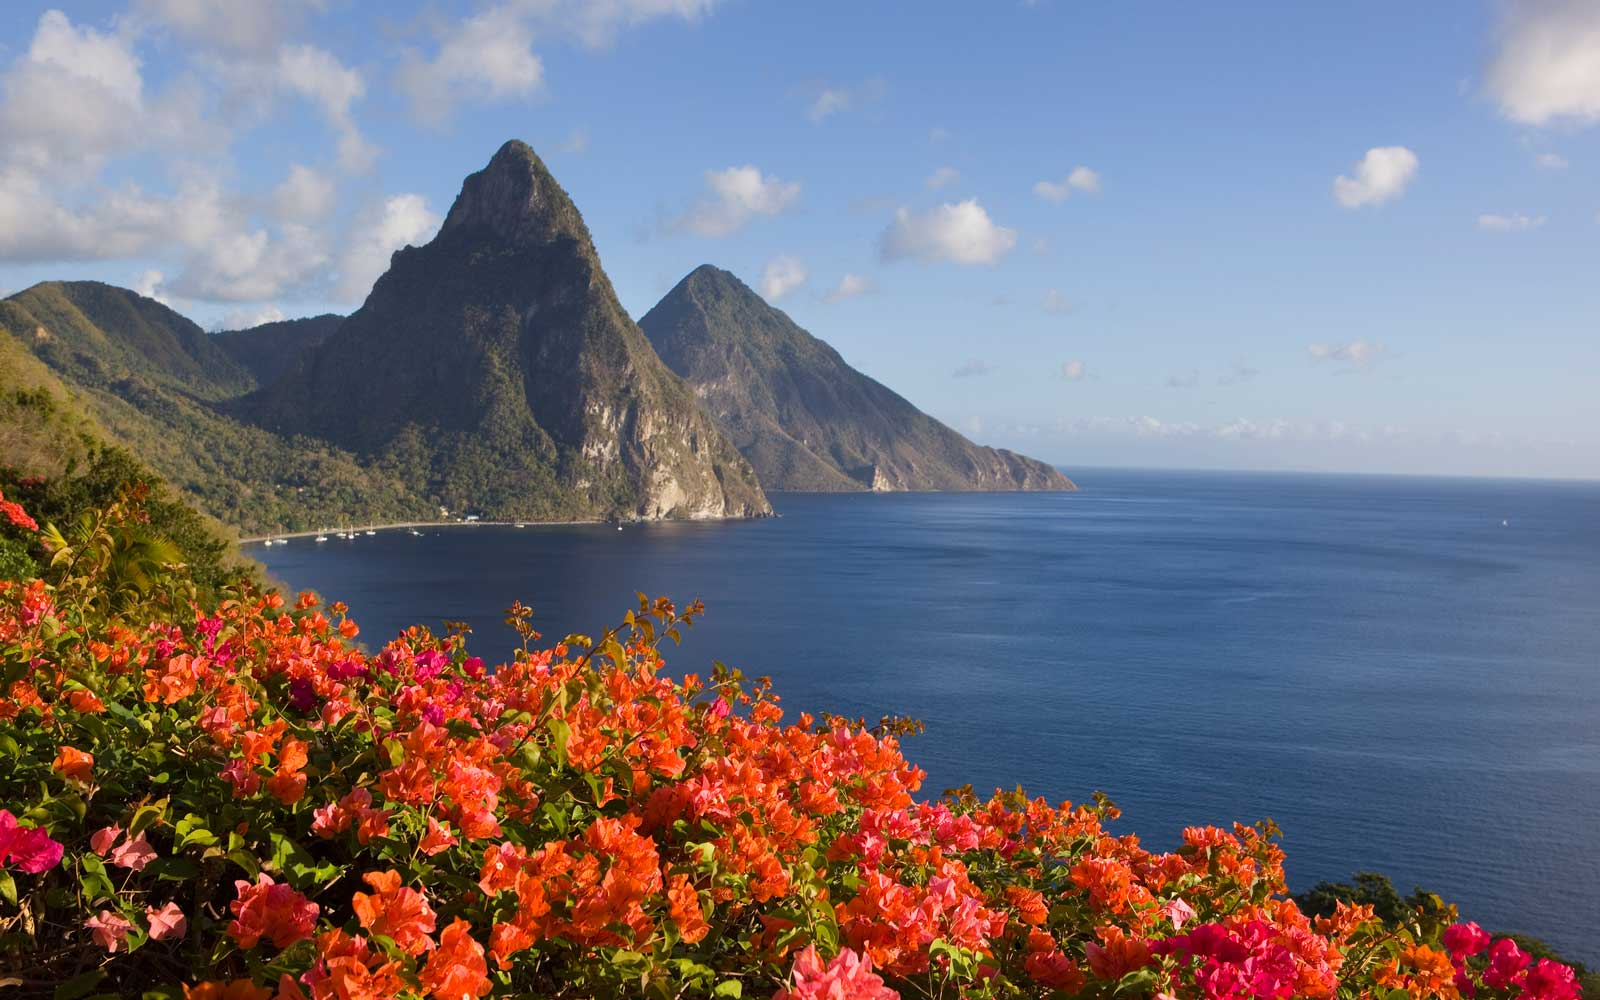 Virgin Atlantic Is Giving Away Free Flights to St. Lucia to Women With This Name